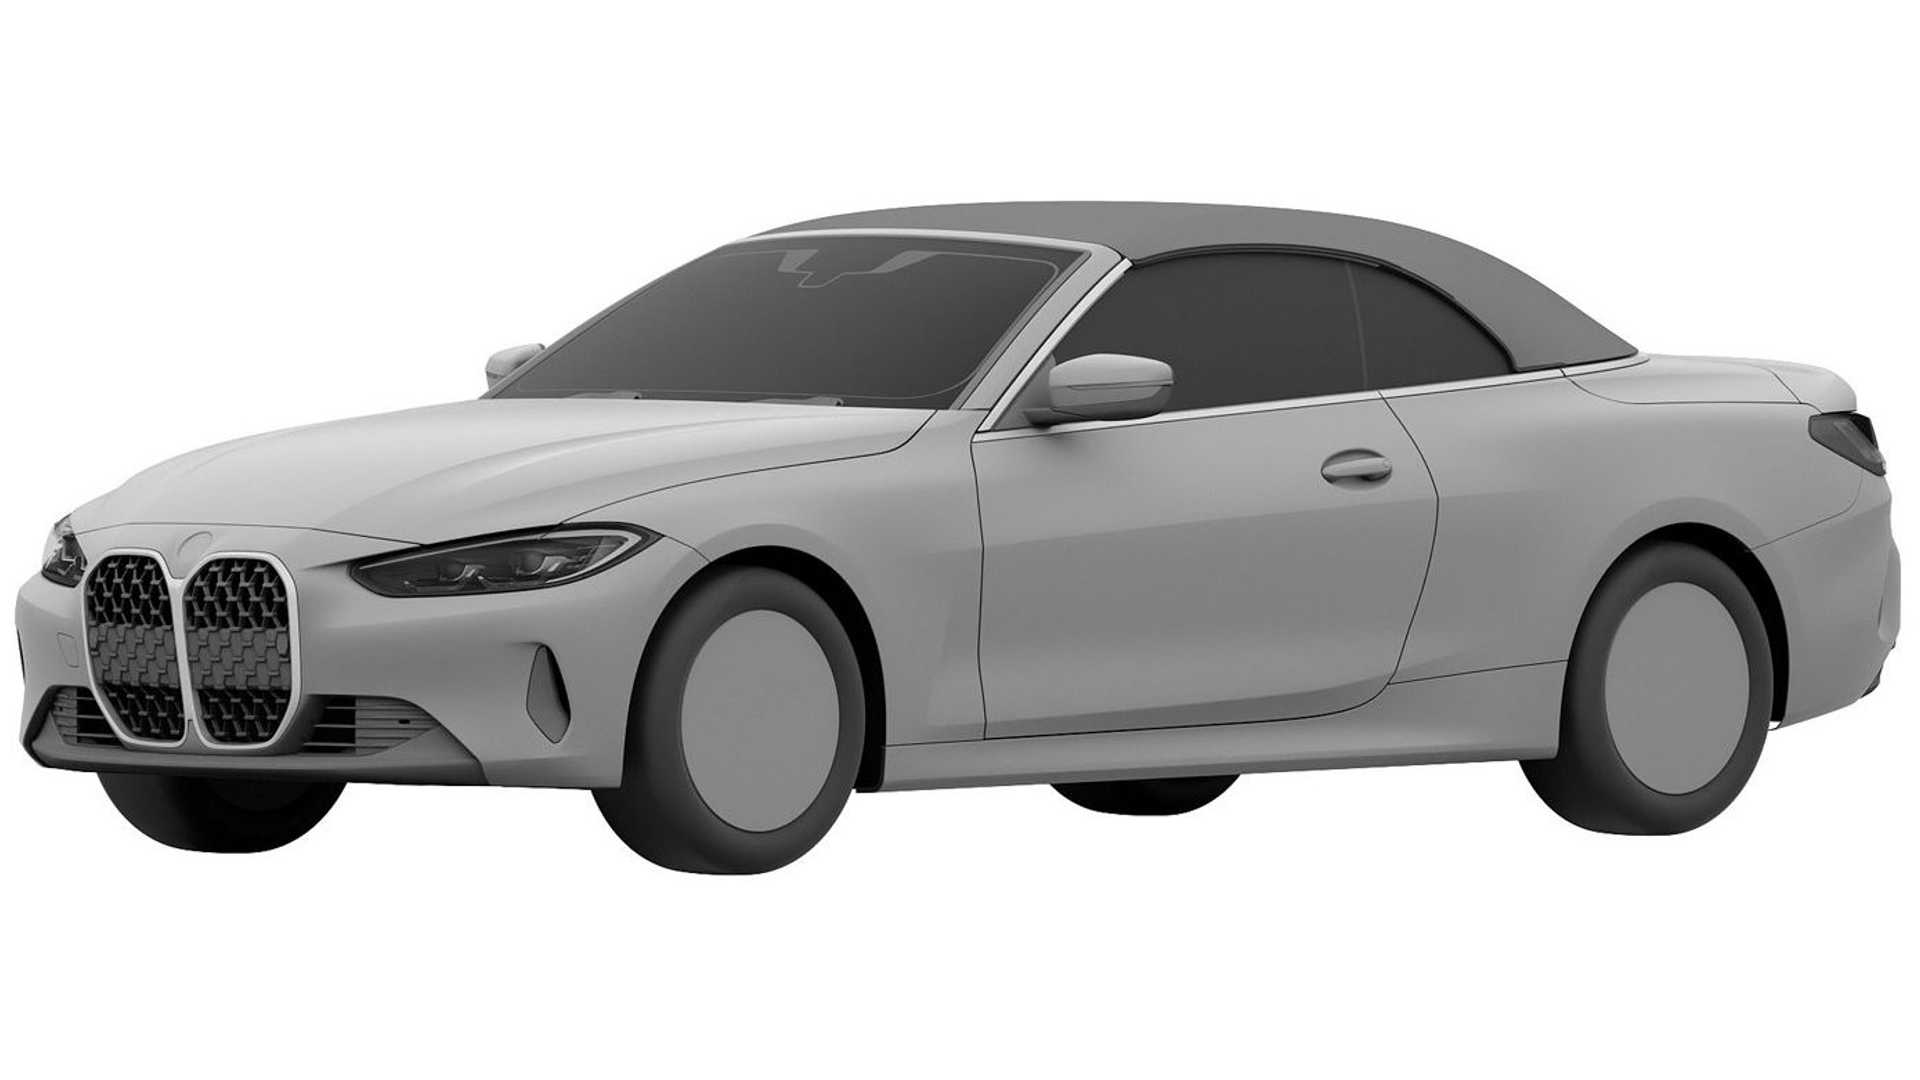 2022 BMW 4 Series Convertible Leaks Out Via Chinese Patent ...